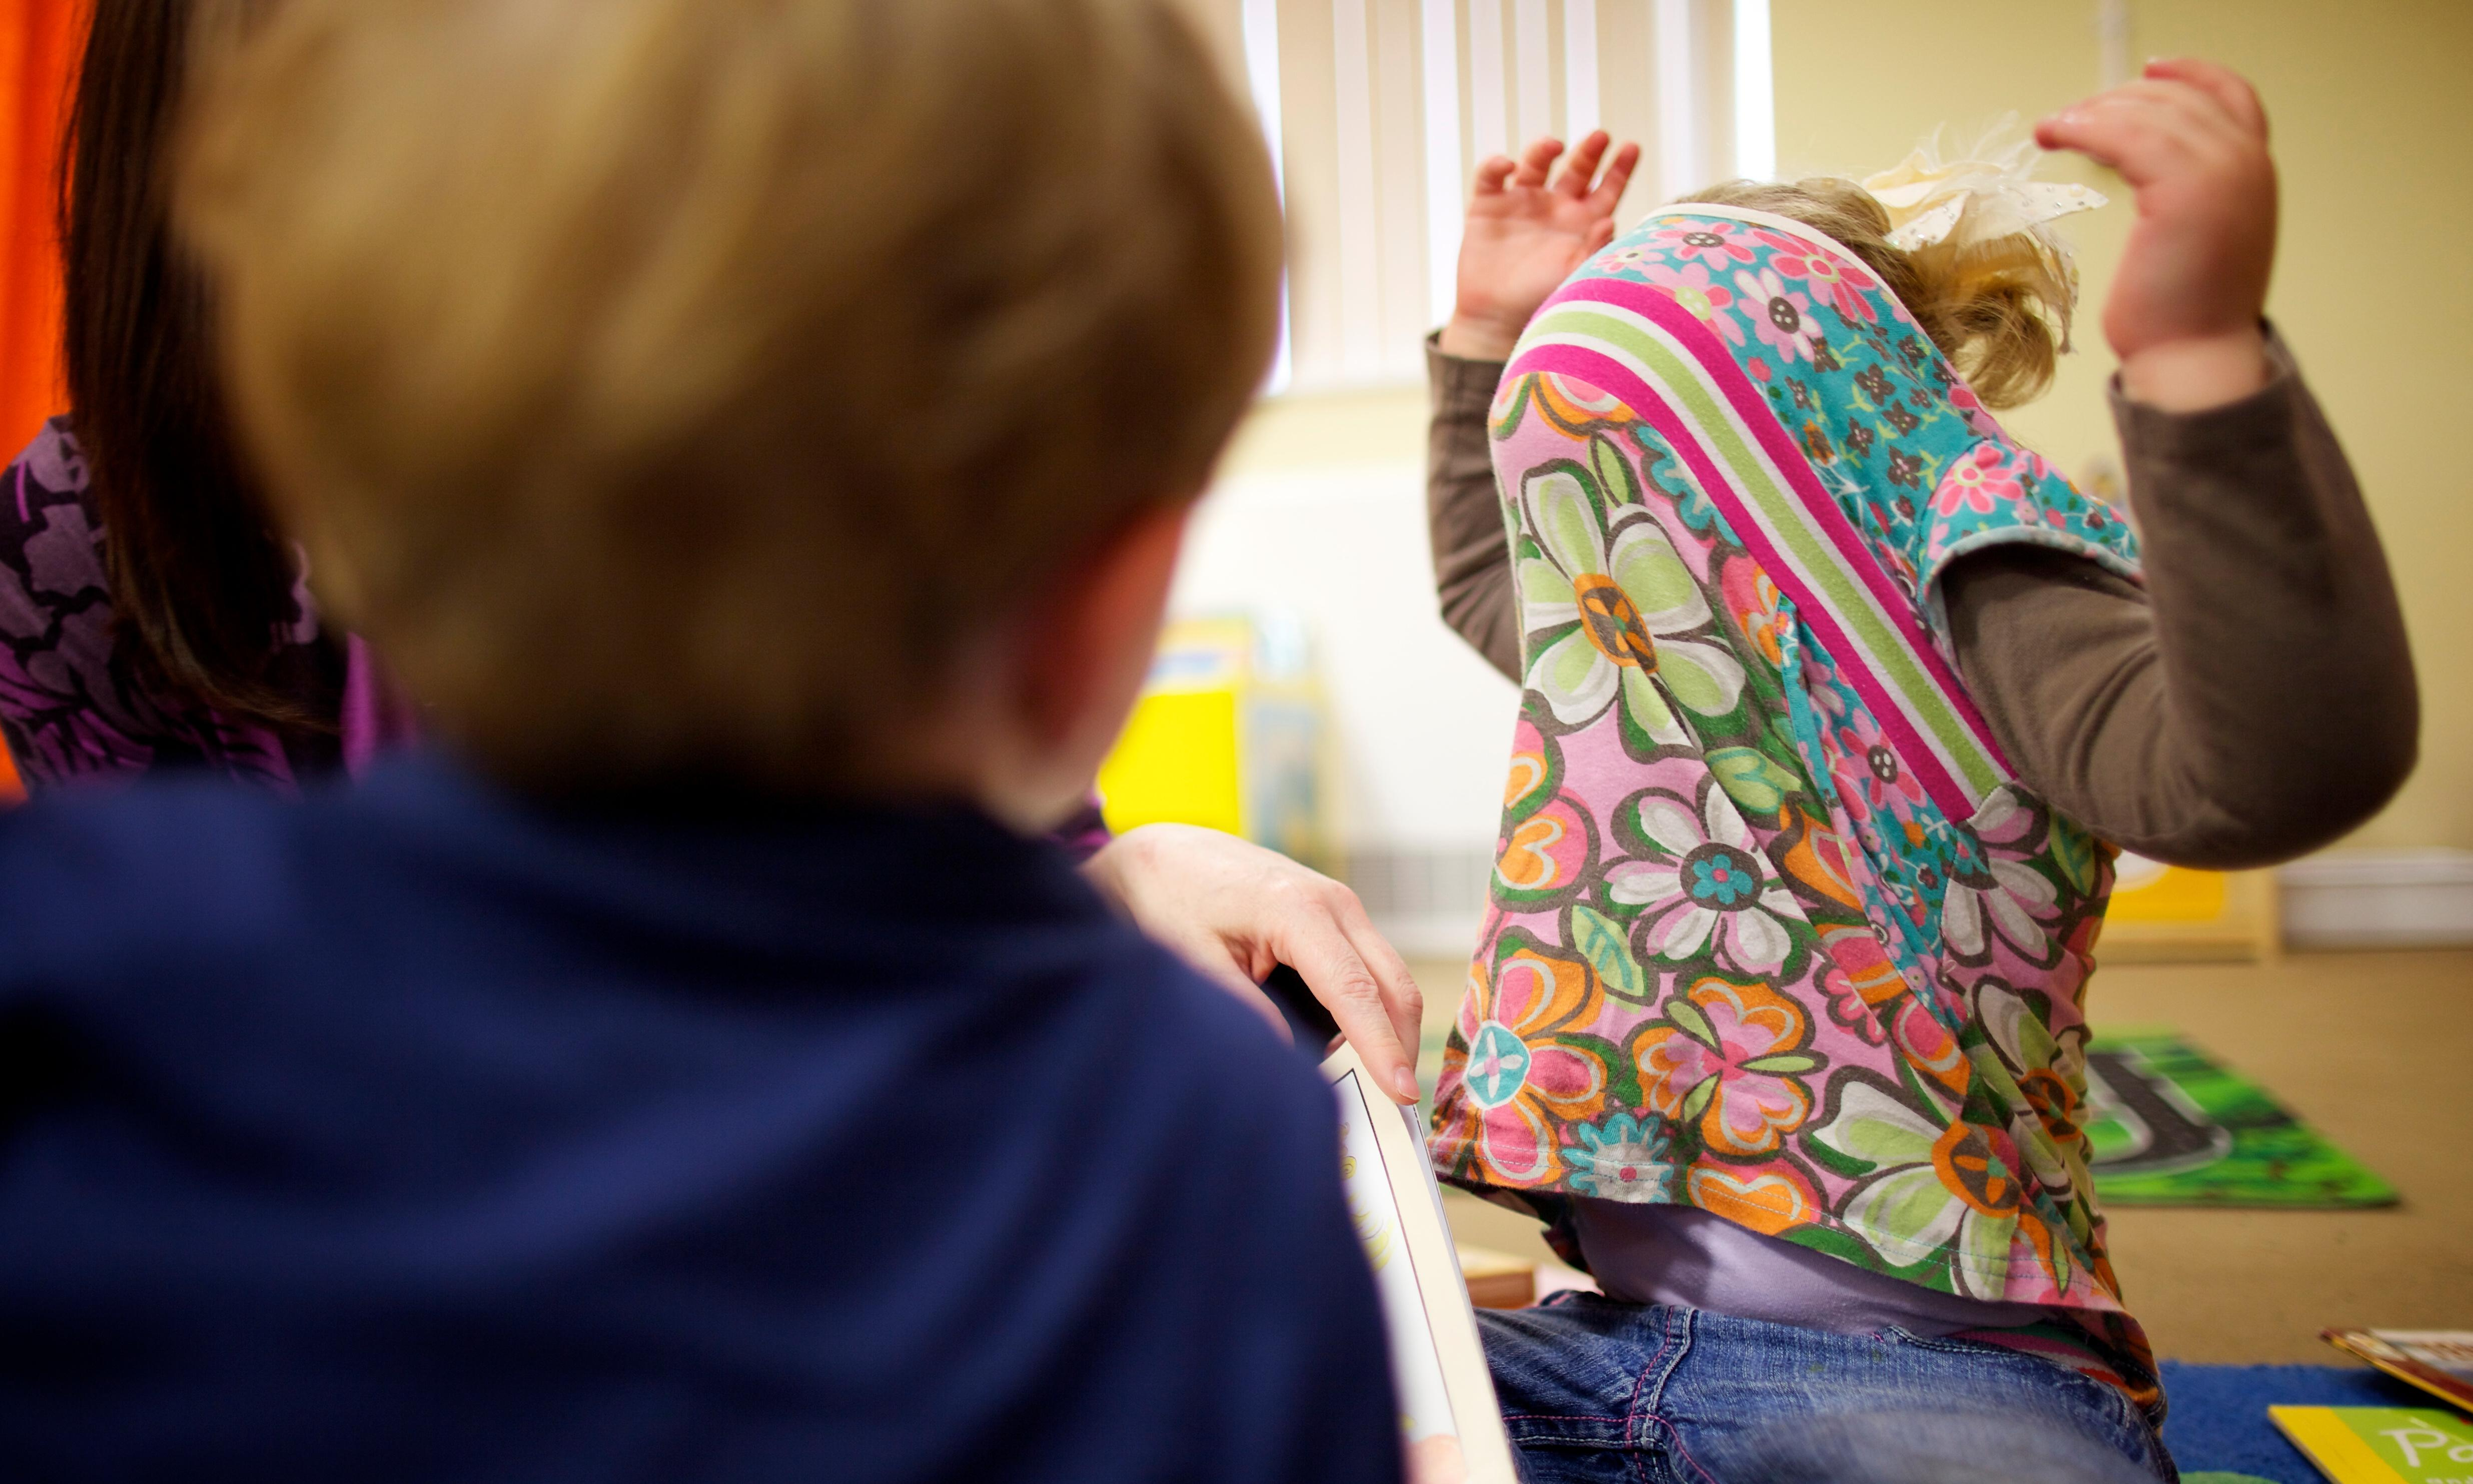 Nursery fees rise as free childcare scheme backfires